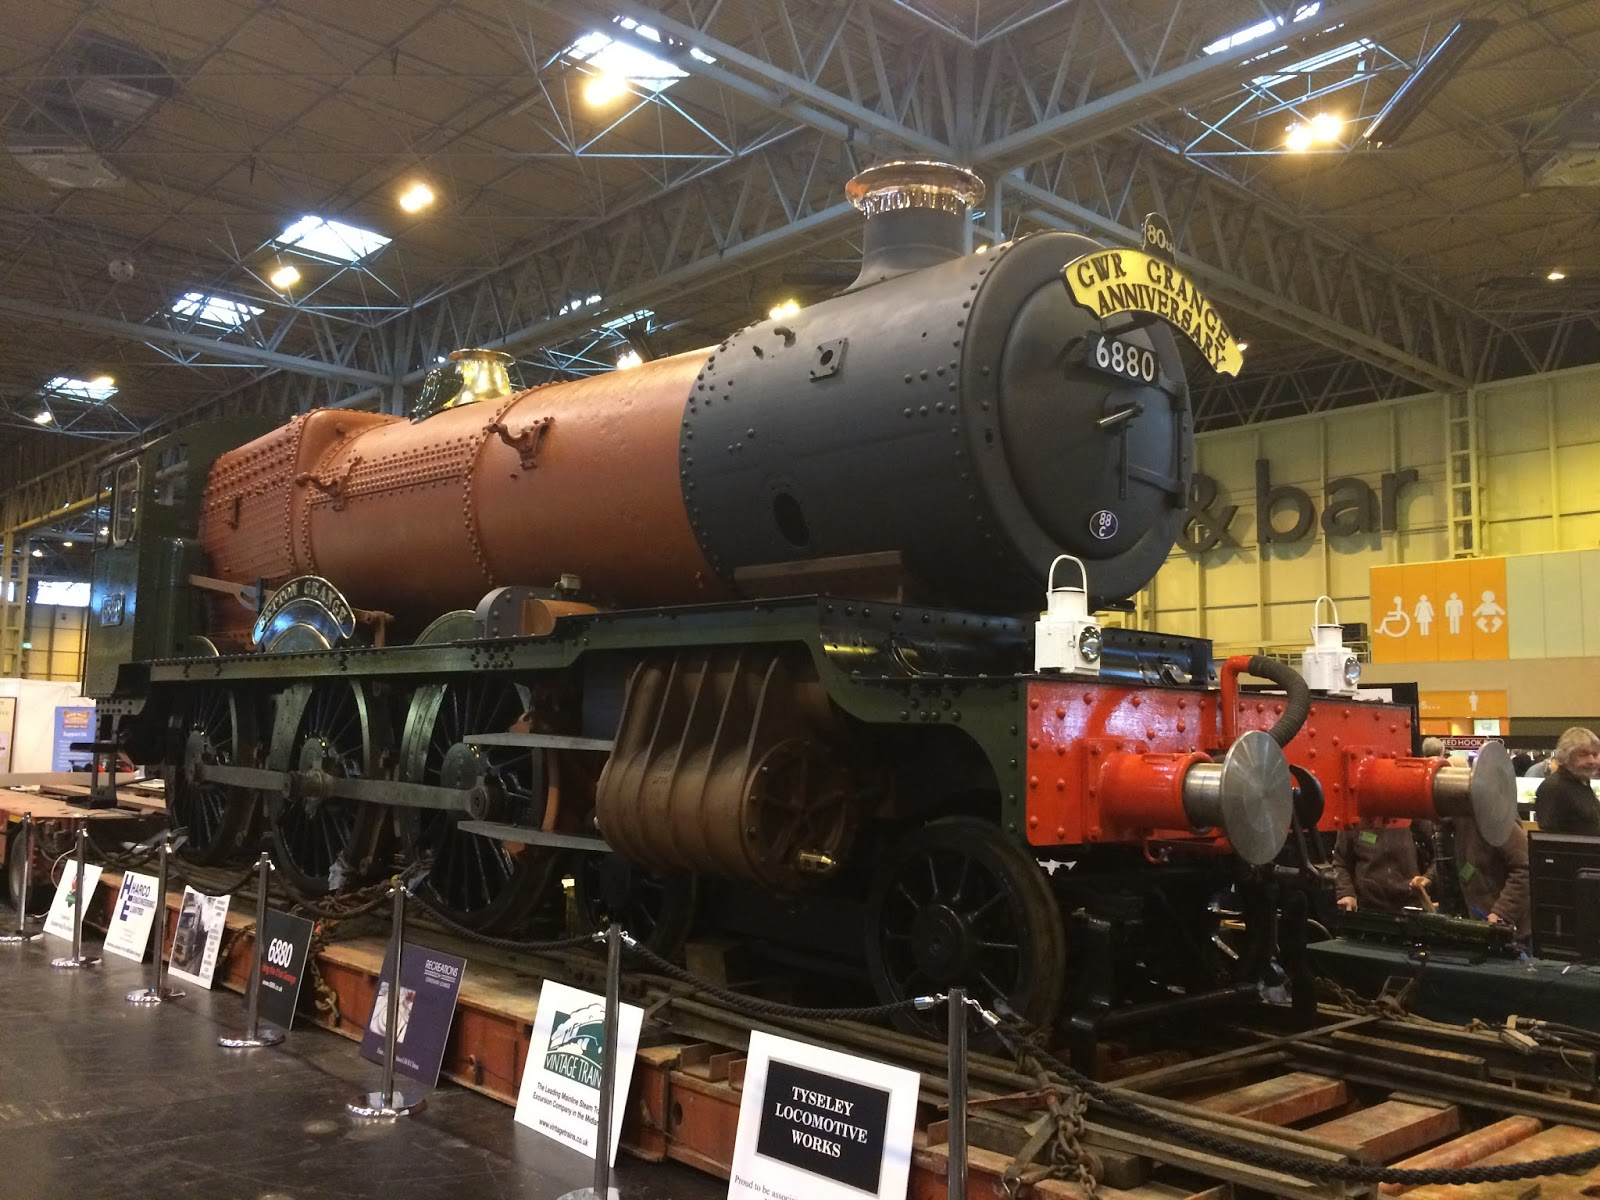 sam\u0027s world a warley wandera quiet morning was spent today wandering around the 2016 warley national model railway exhibition at the nec we\u0027ve been coming here annually for about 14